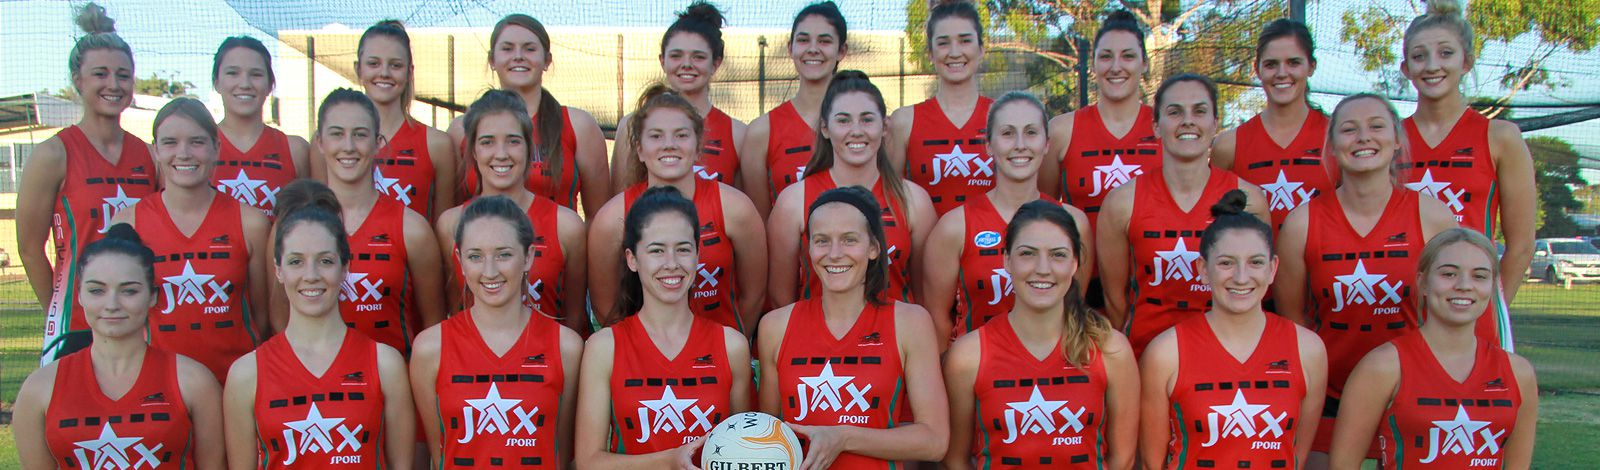 Woods Panthers Netball Club Blackwood